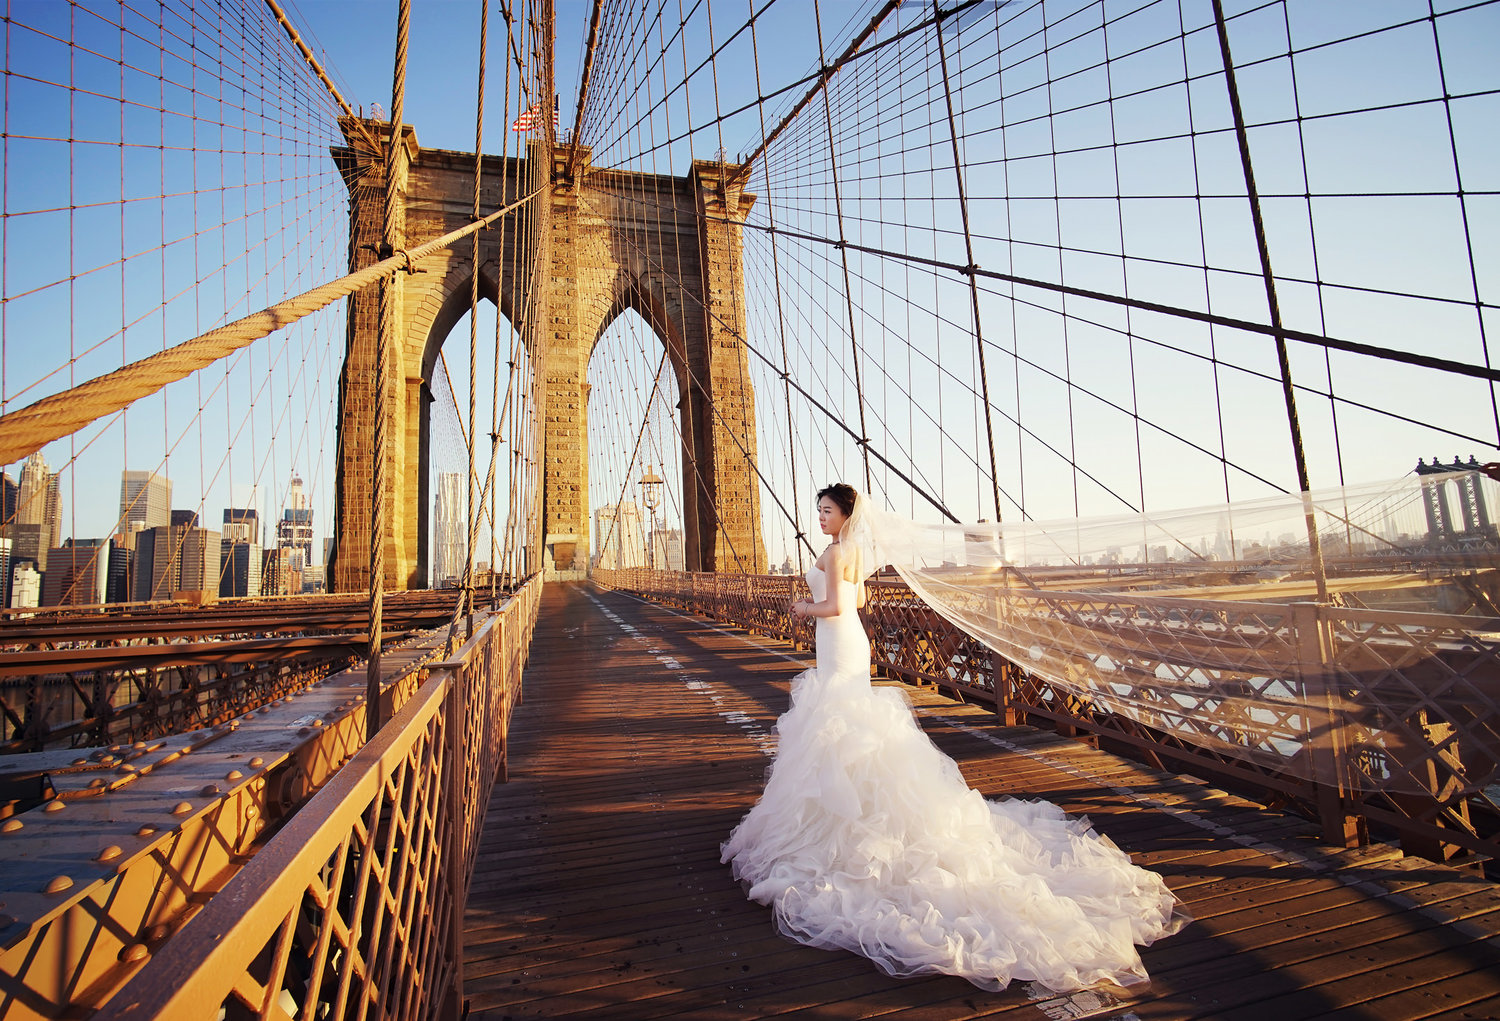 bridge wedding photography ideas